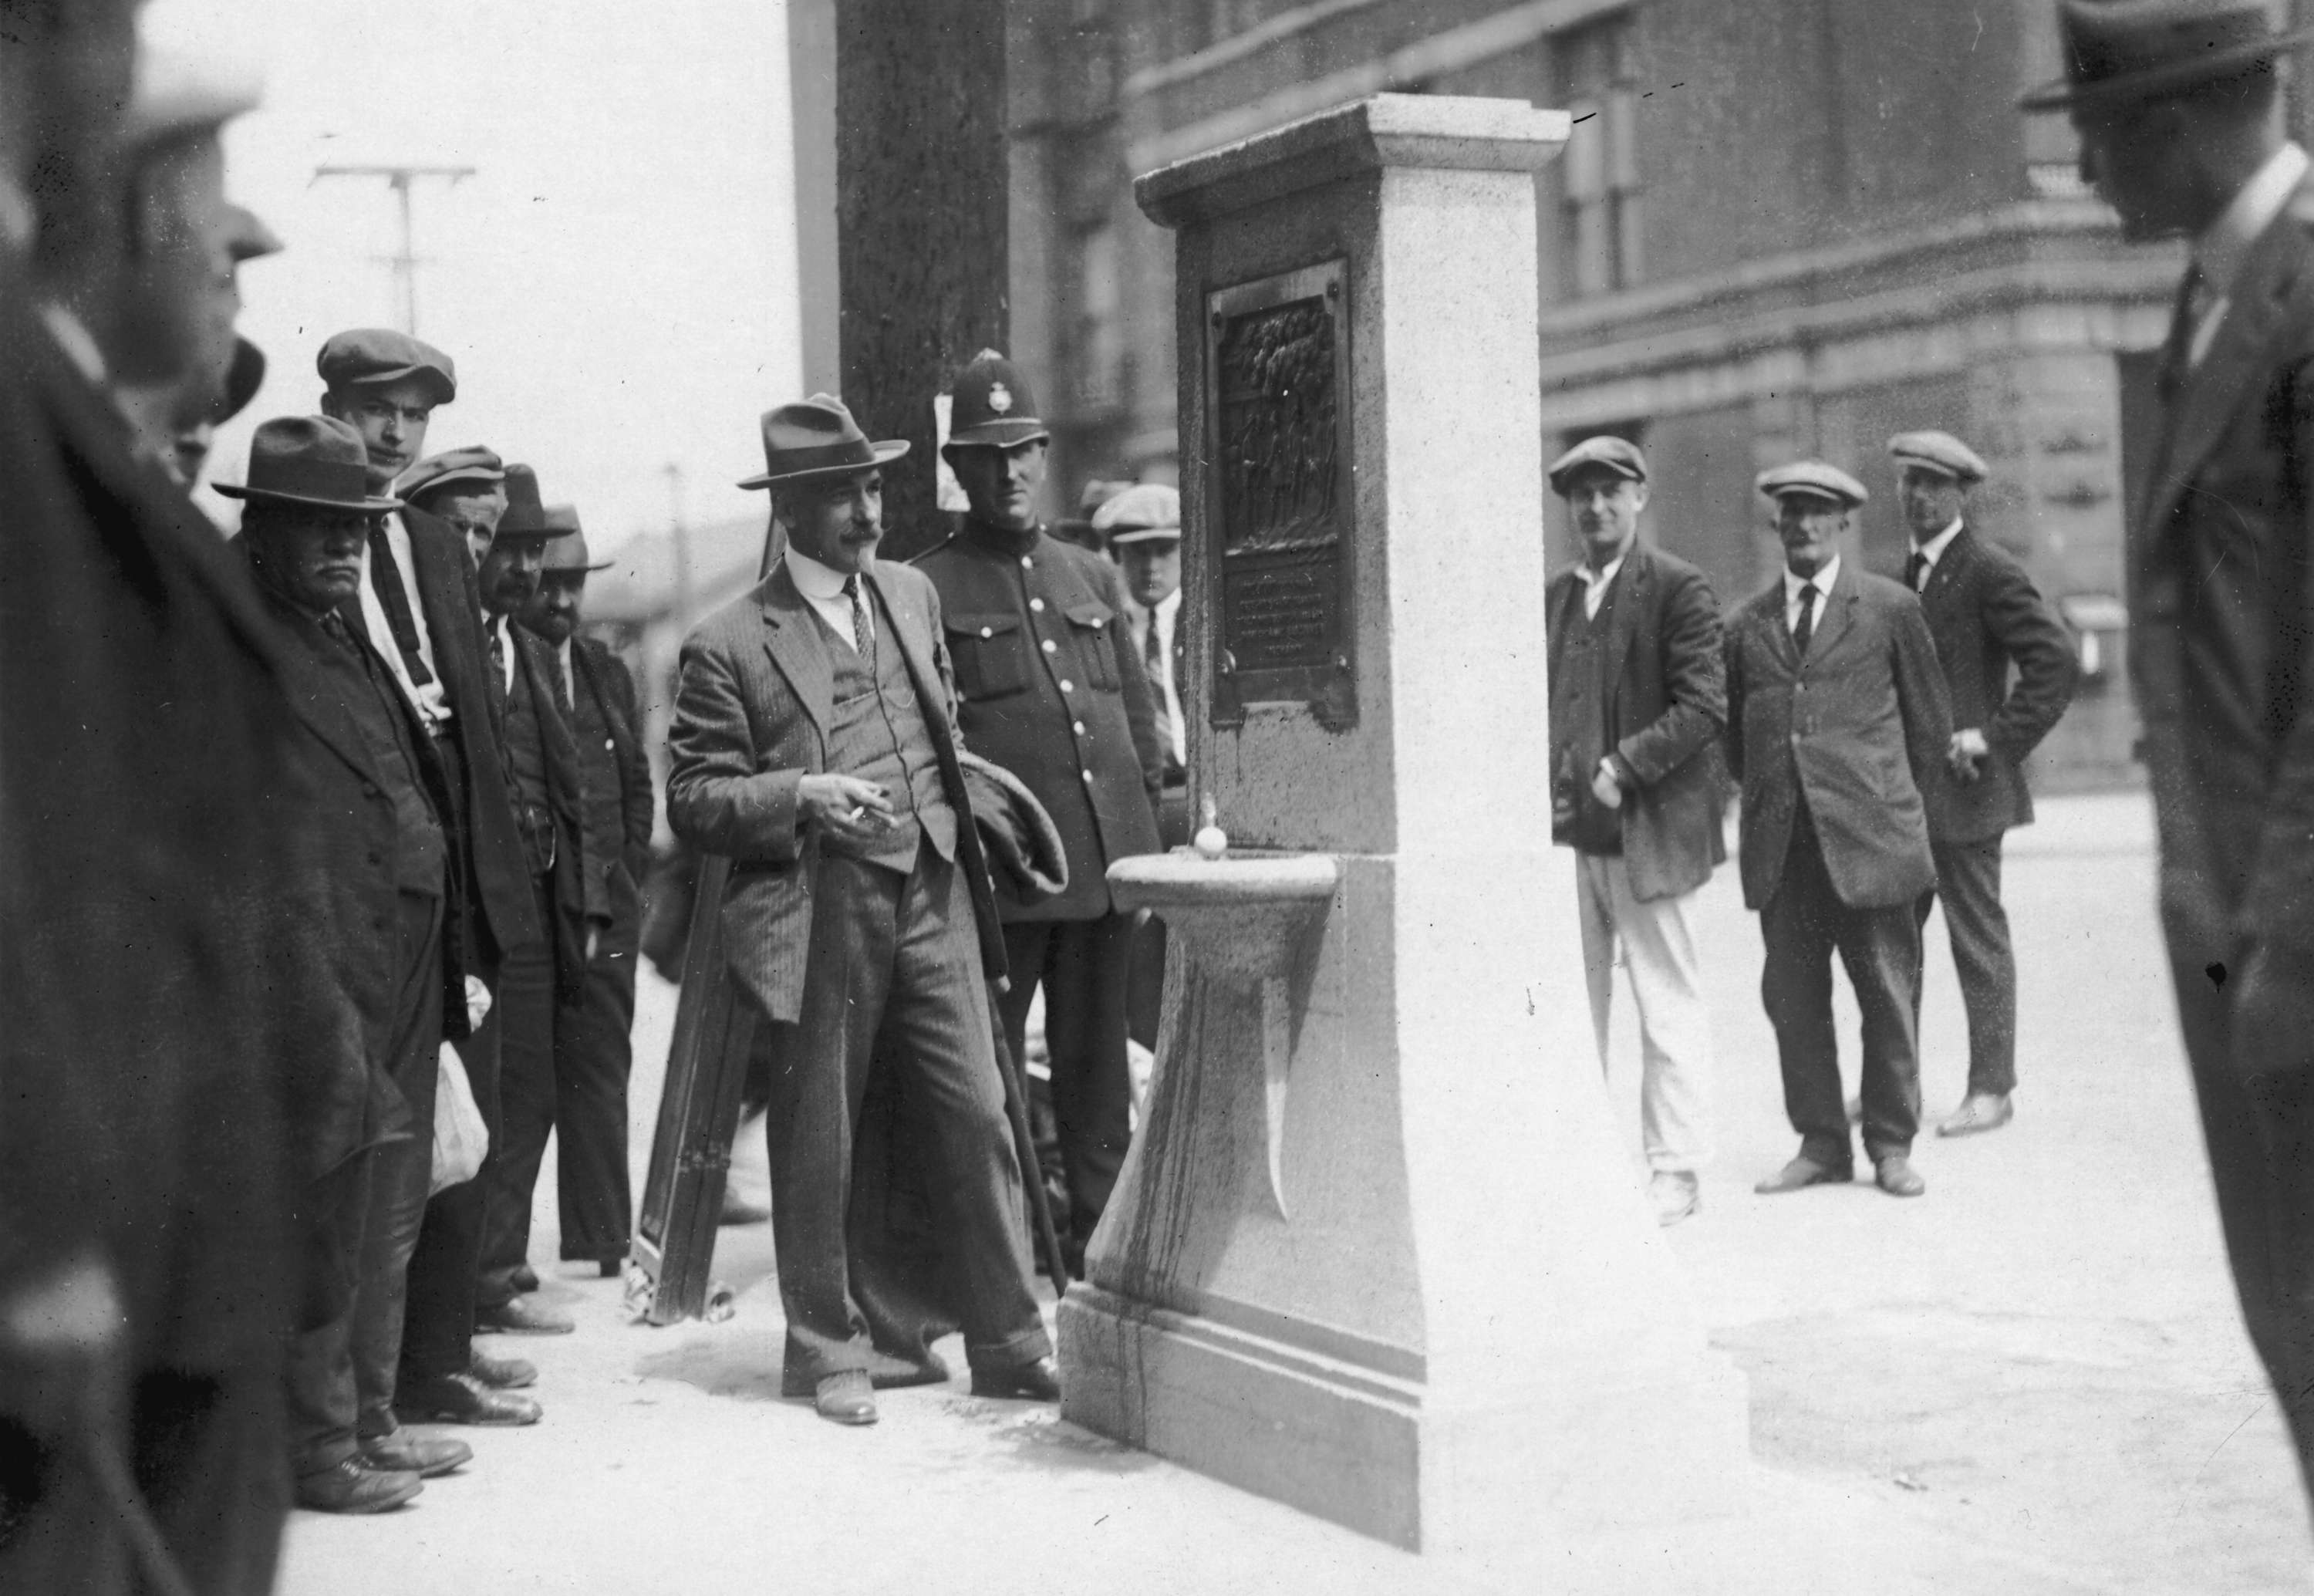 CVA 677-167 - Drinking fountain at Powell and Carrall Streets [Maple Tree monument] 1928